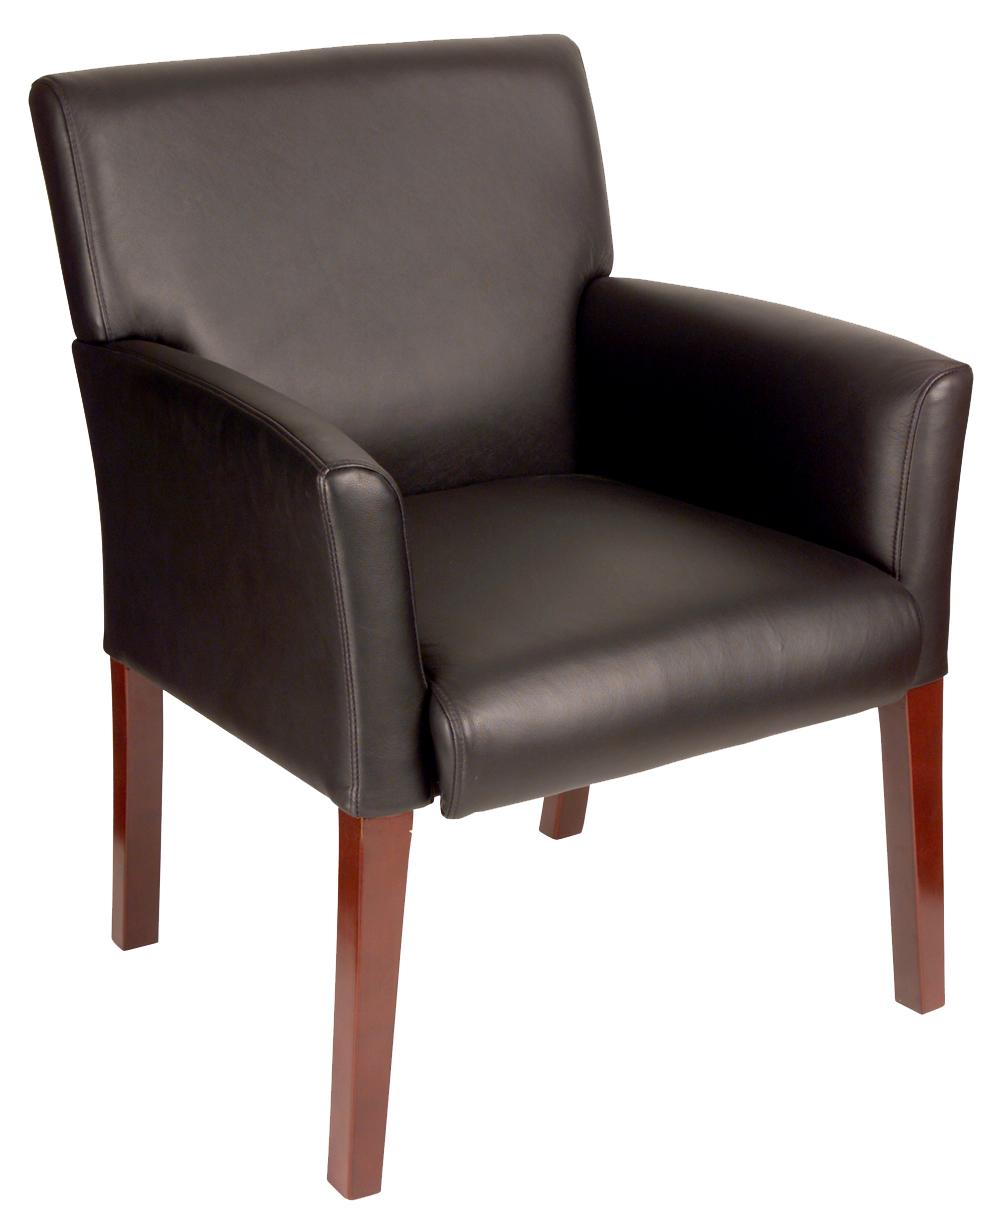 icc solutions products guest hon leg business chairs seating chair base